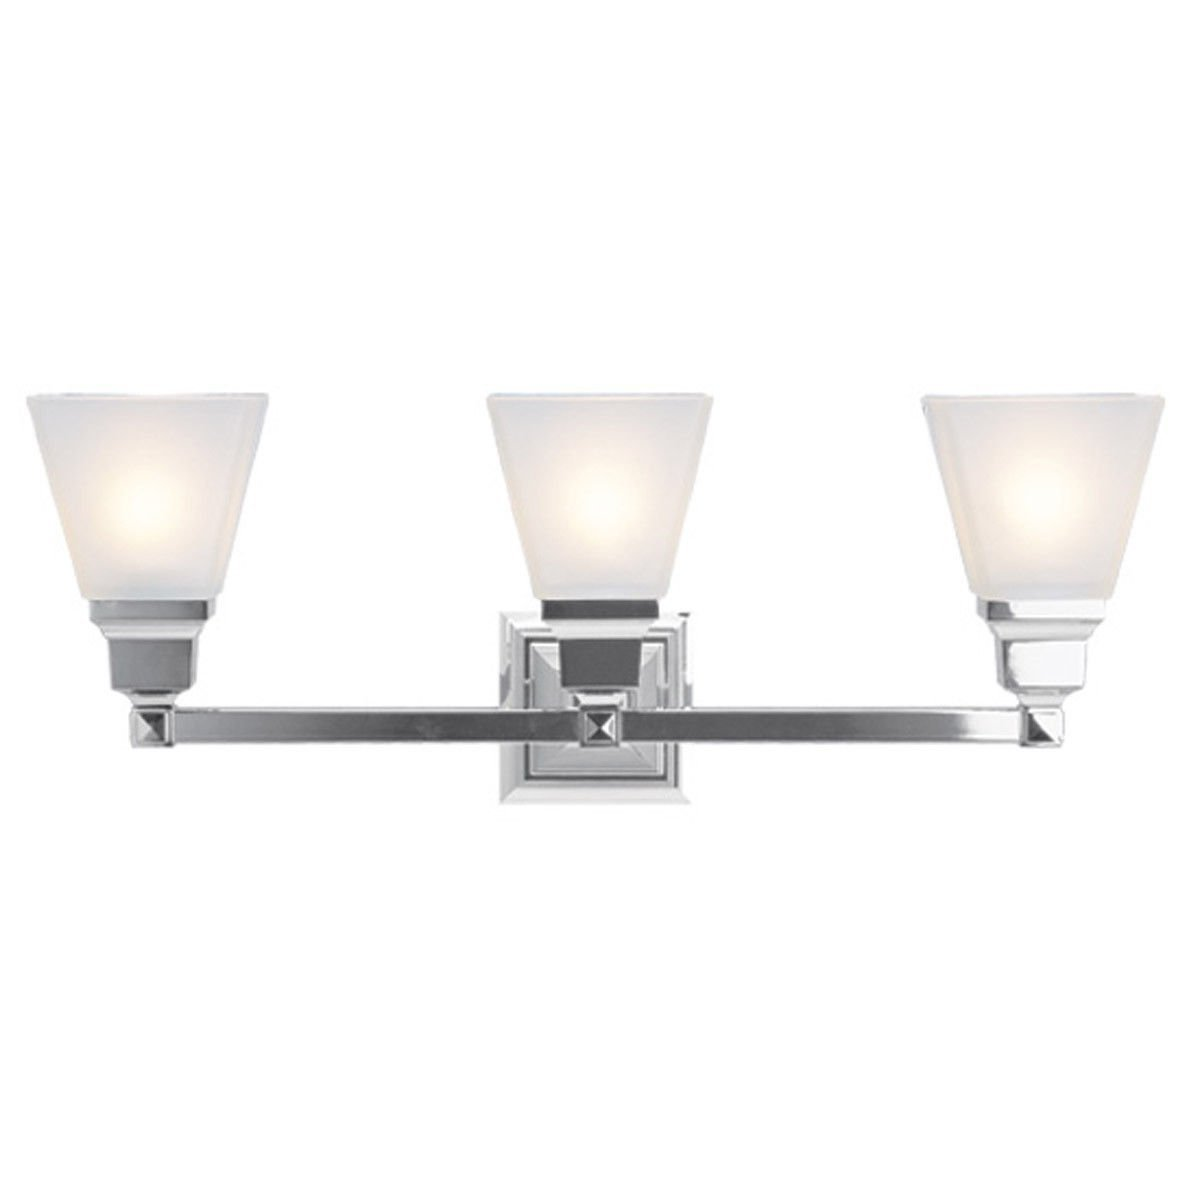 Cheap Mission Style Bathroom Lighting Find Mission Style Bathroom - Bathroom vanity lights for sale